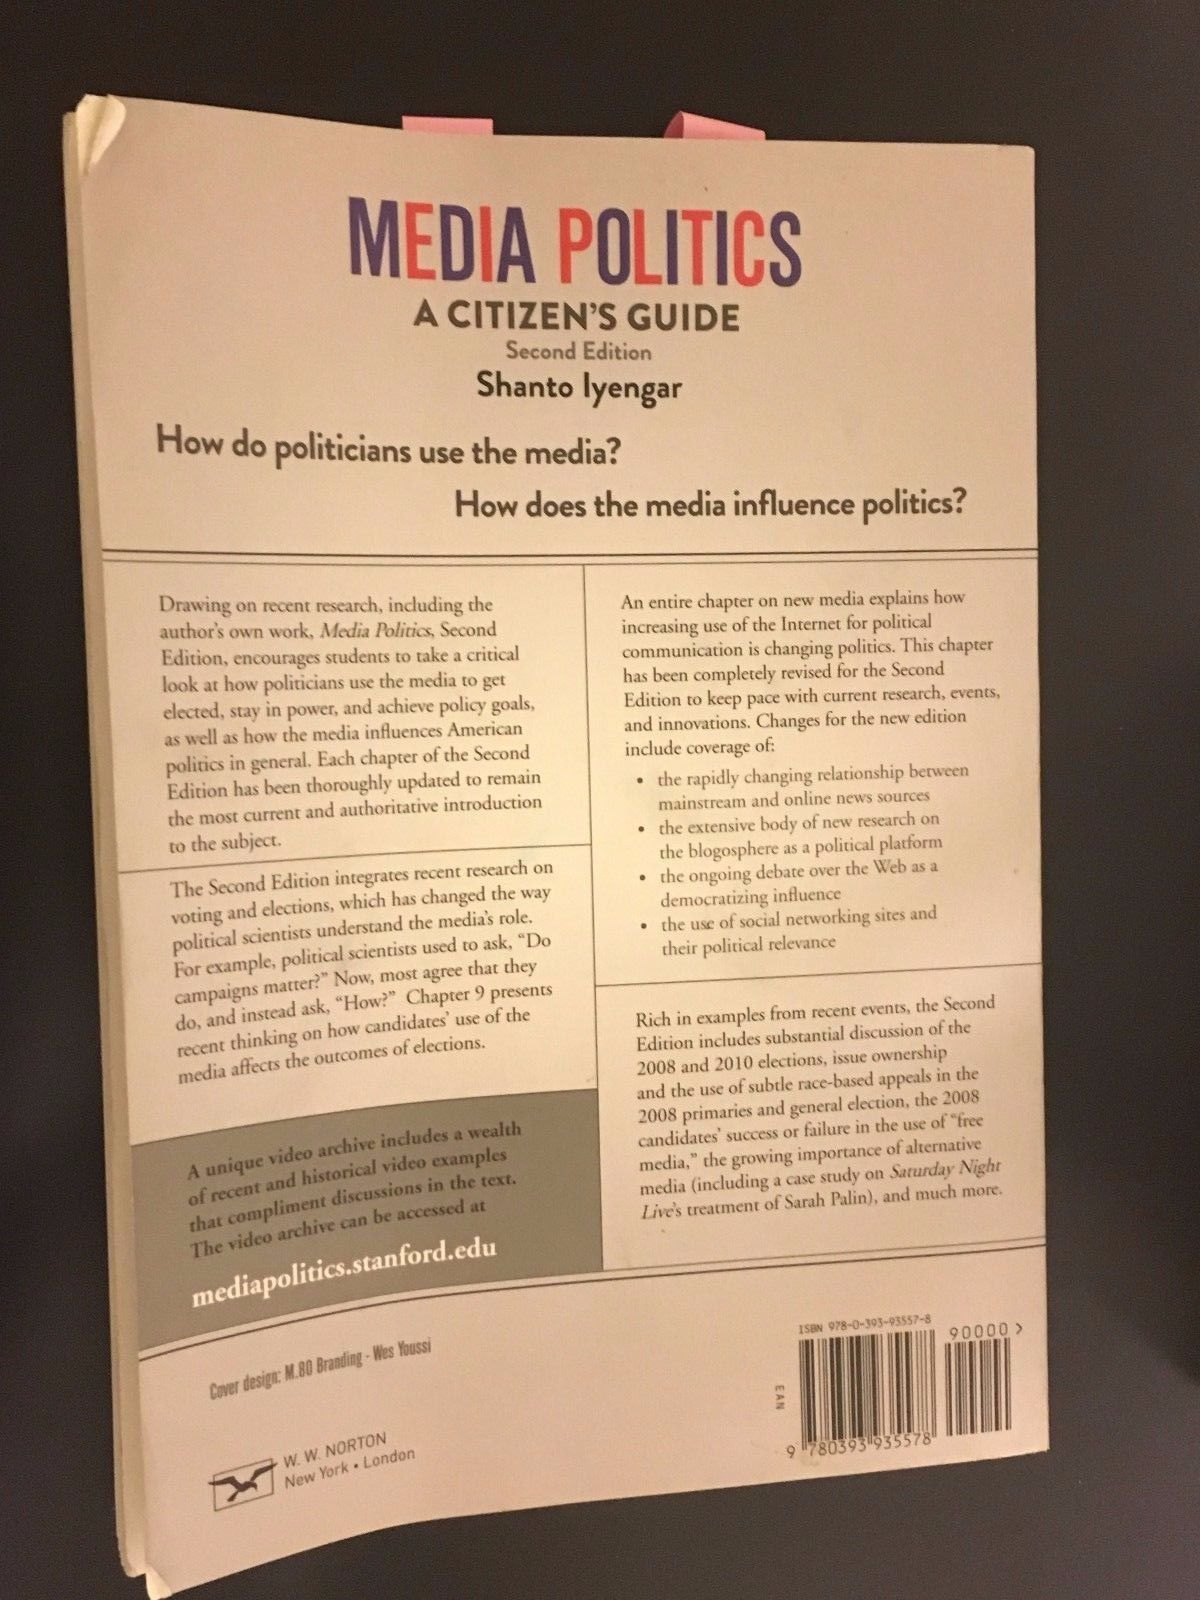 Media Politics: A Citizen's Guide by Shanto Iyengar (2011, Paperback) 2nd ed